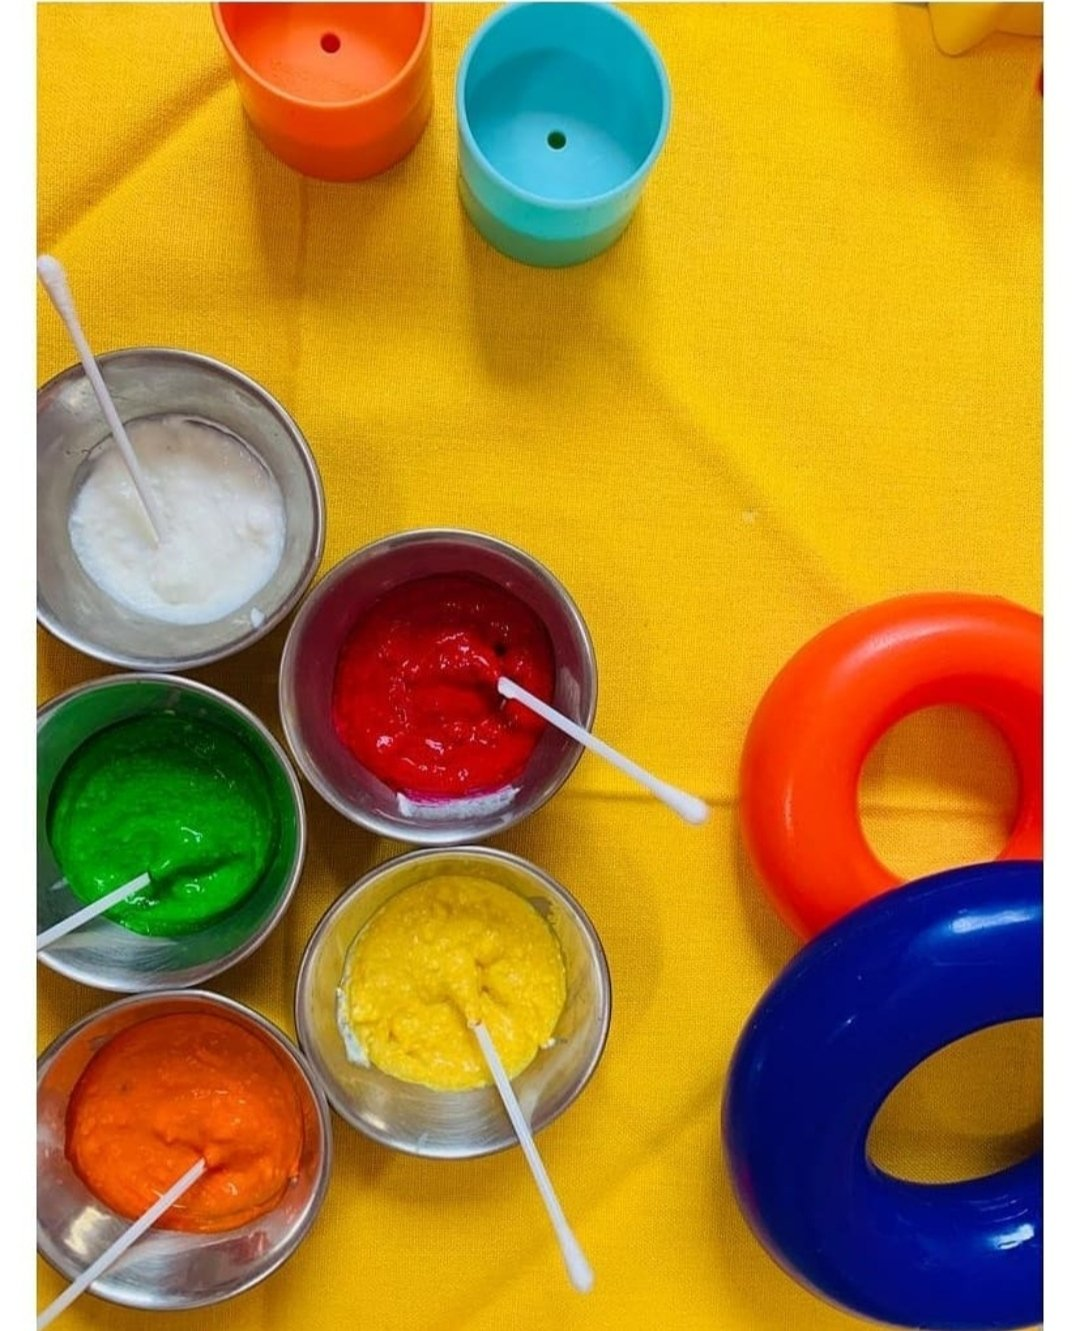 Non-toxic edible finger paints